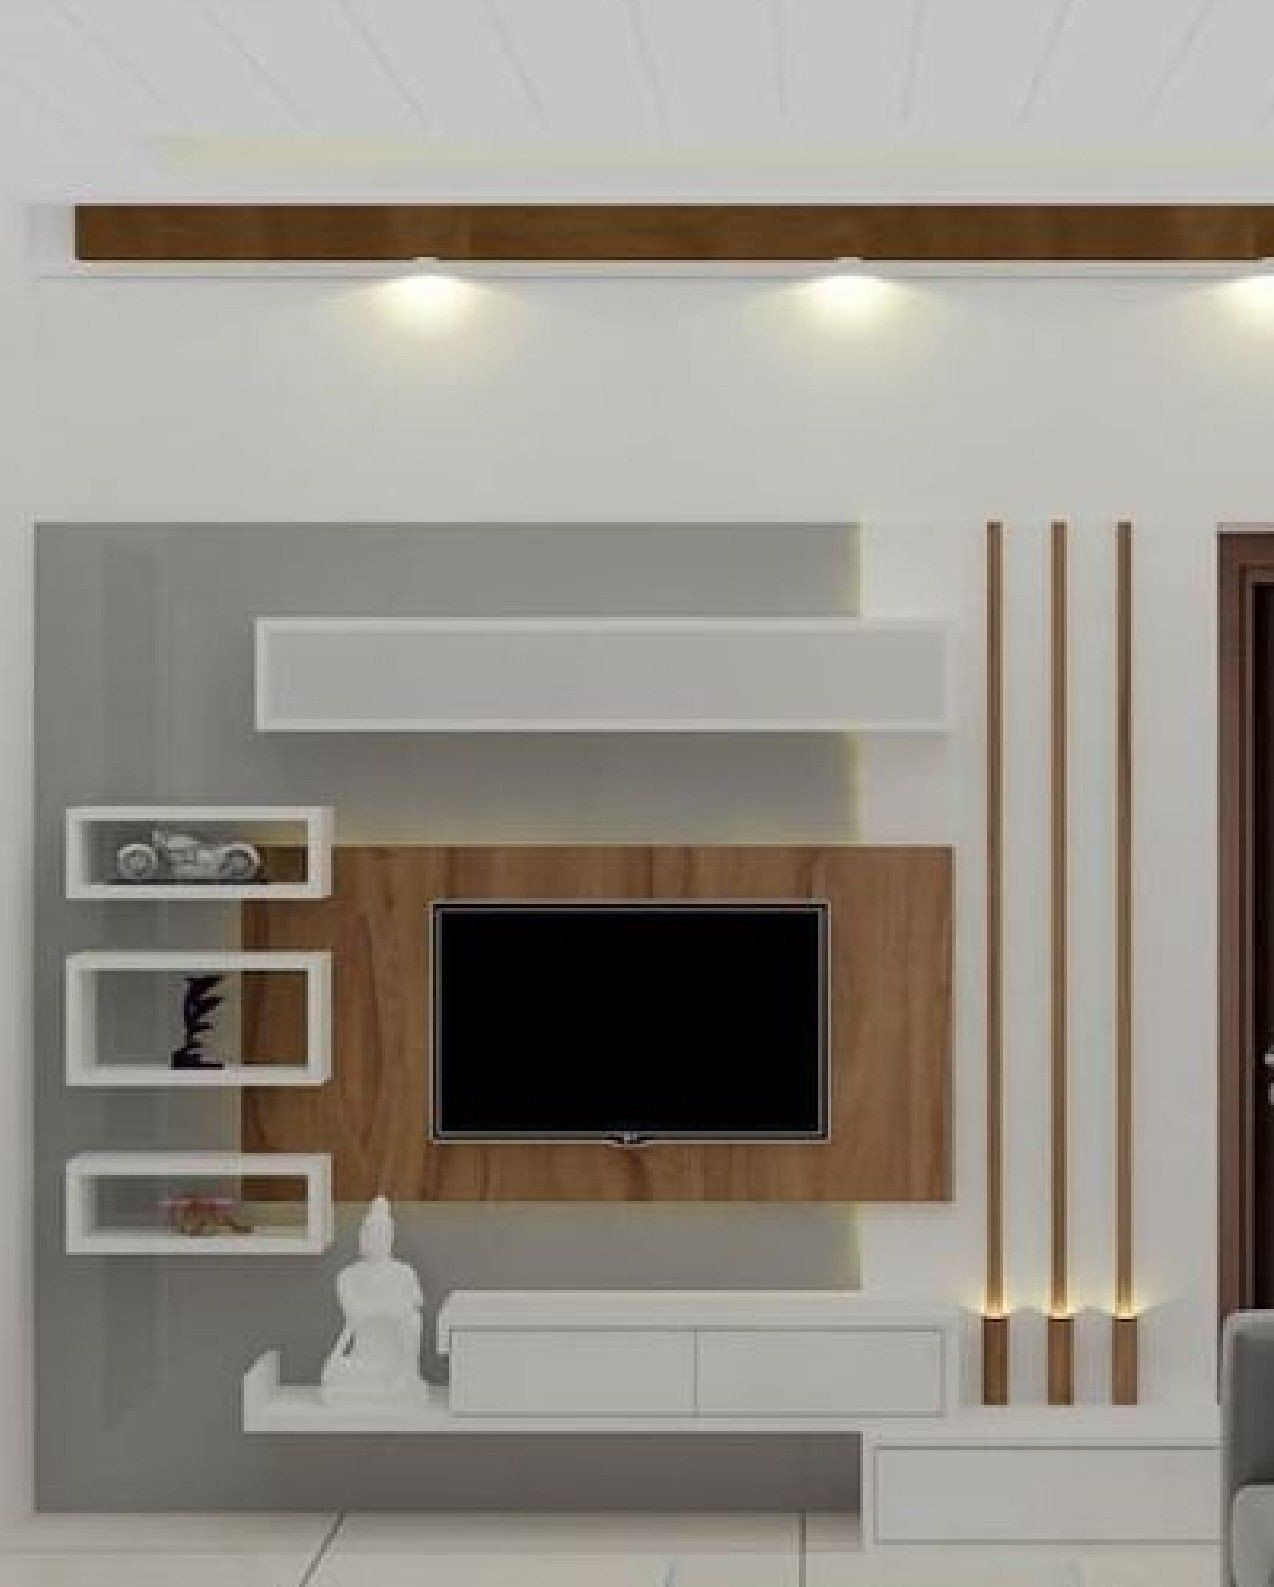 Living Room Wall Units Furniture Inspirational Moderntvwallunits In 2020 Wall Tv Unit Design Living Room Tv Unit Designs Tv Unit Interior Design